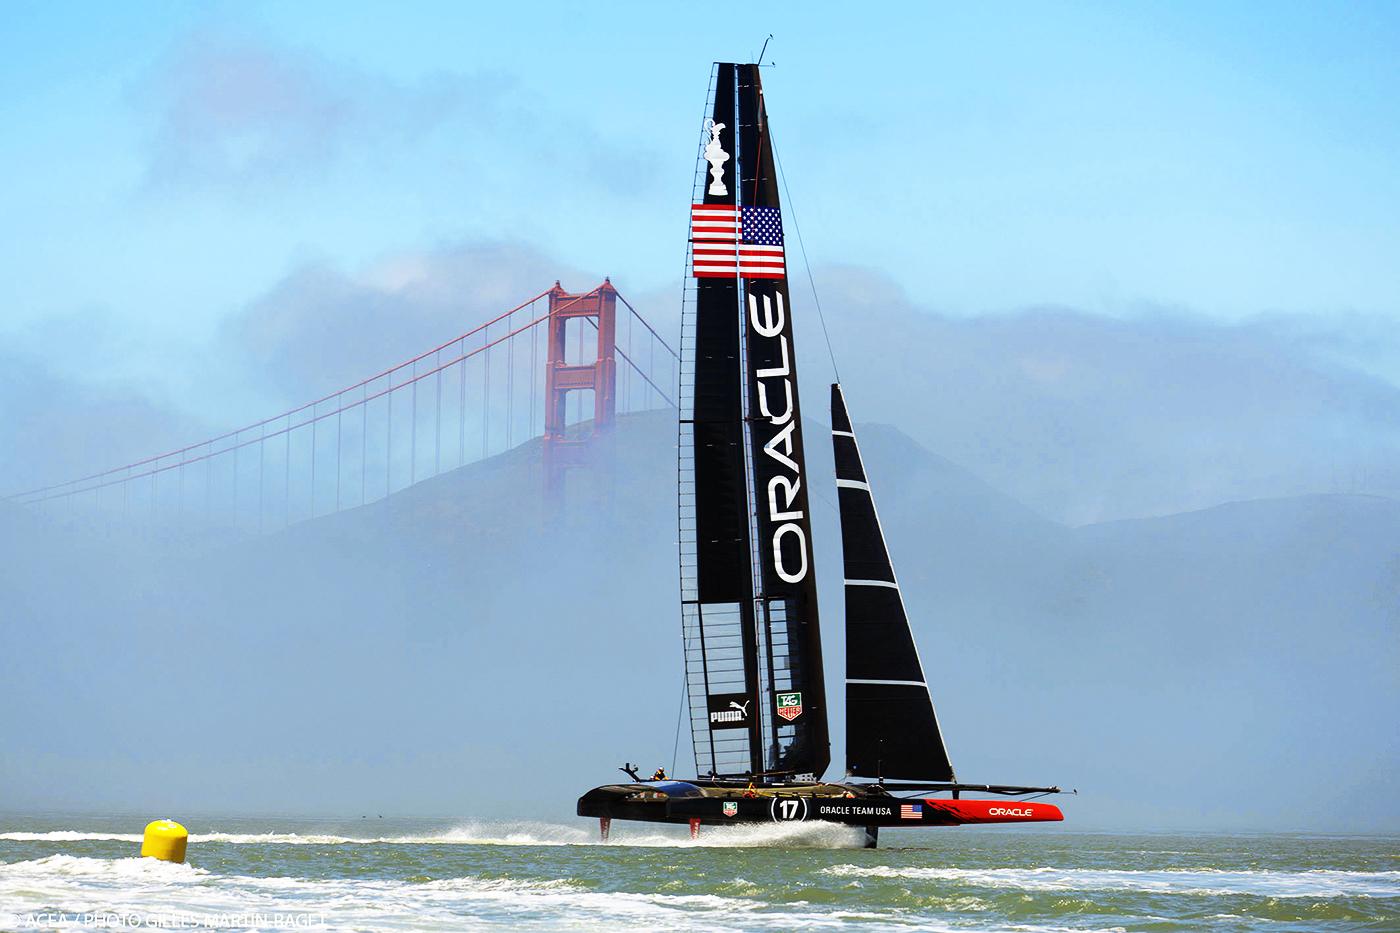 Oracle Team USA, owned by Larry Ellison, is the defending America's Cup champion. The team selected San Francisco as the venue for the 34th edition of one of the oldest sporting events in the world. Image courtesy of Gilles Martin-Raget/ACEA